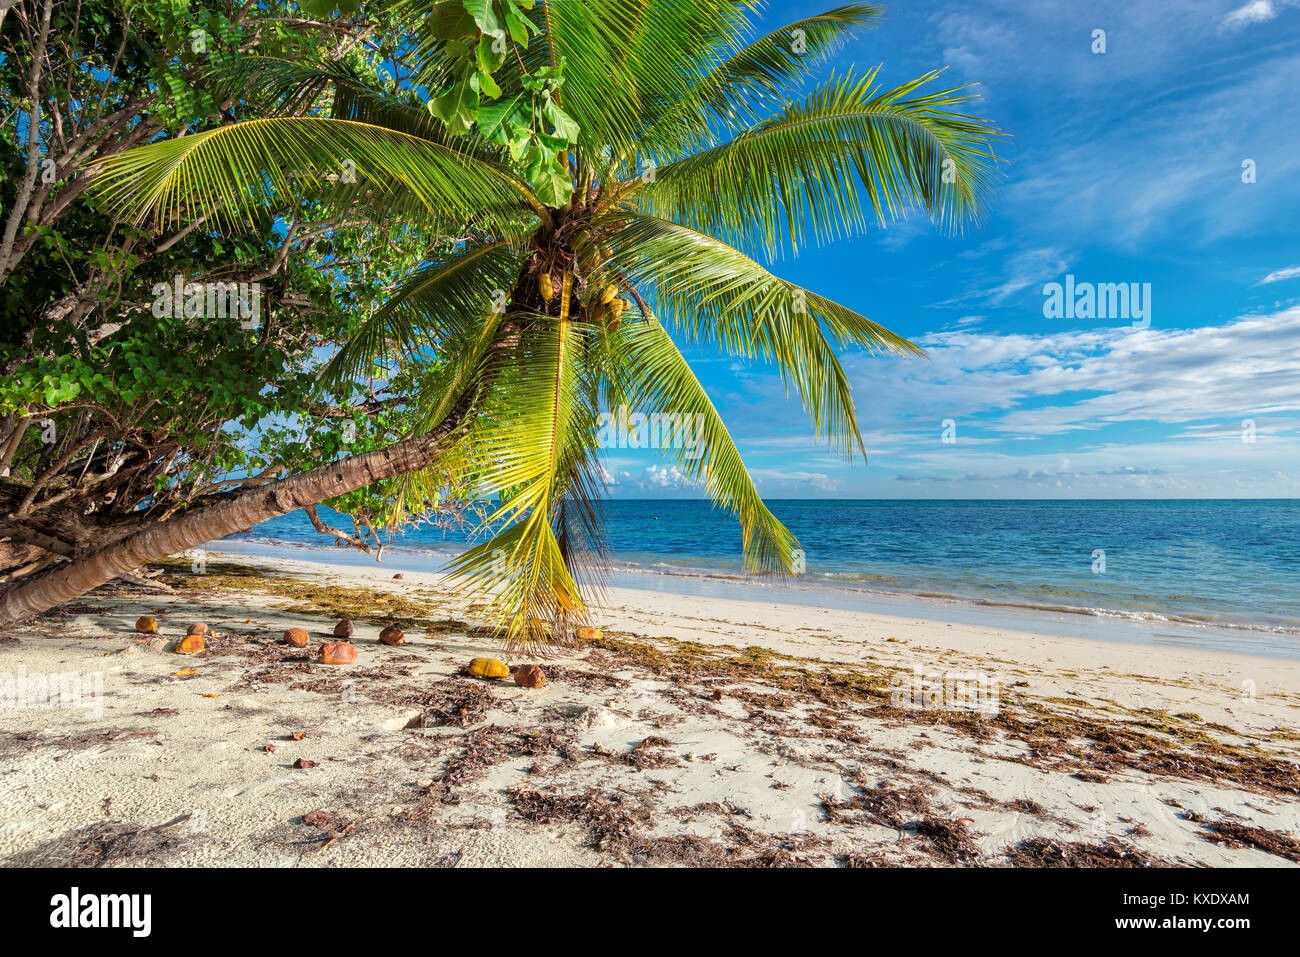 Untouched tropical beach in Seychelles - Stock Image